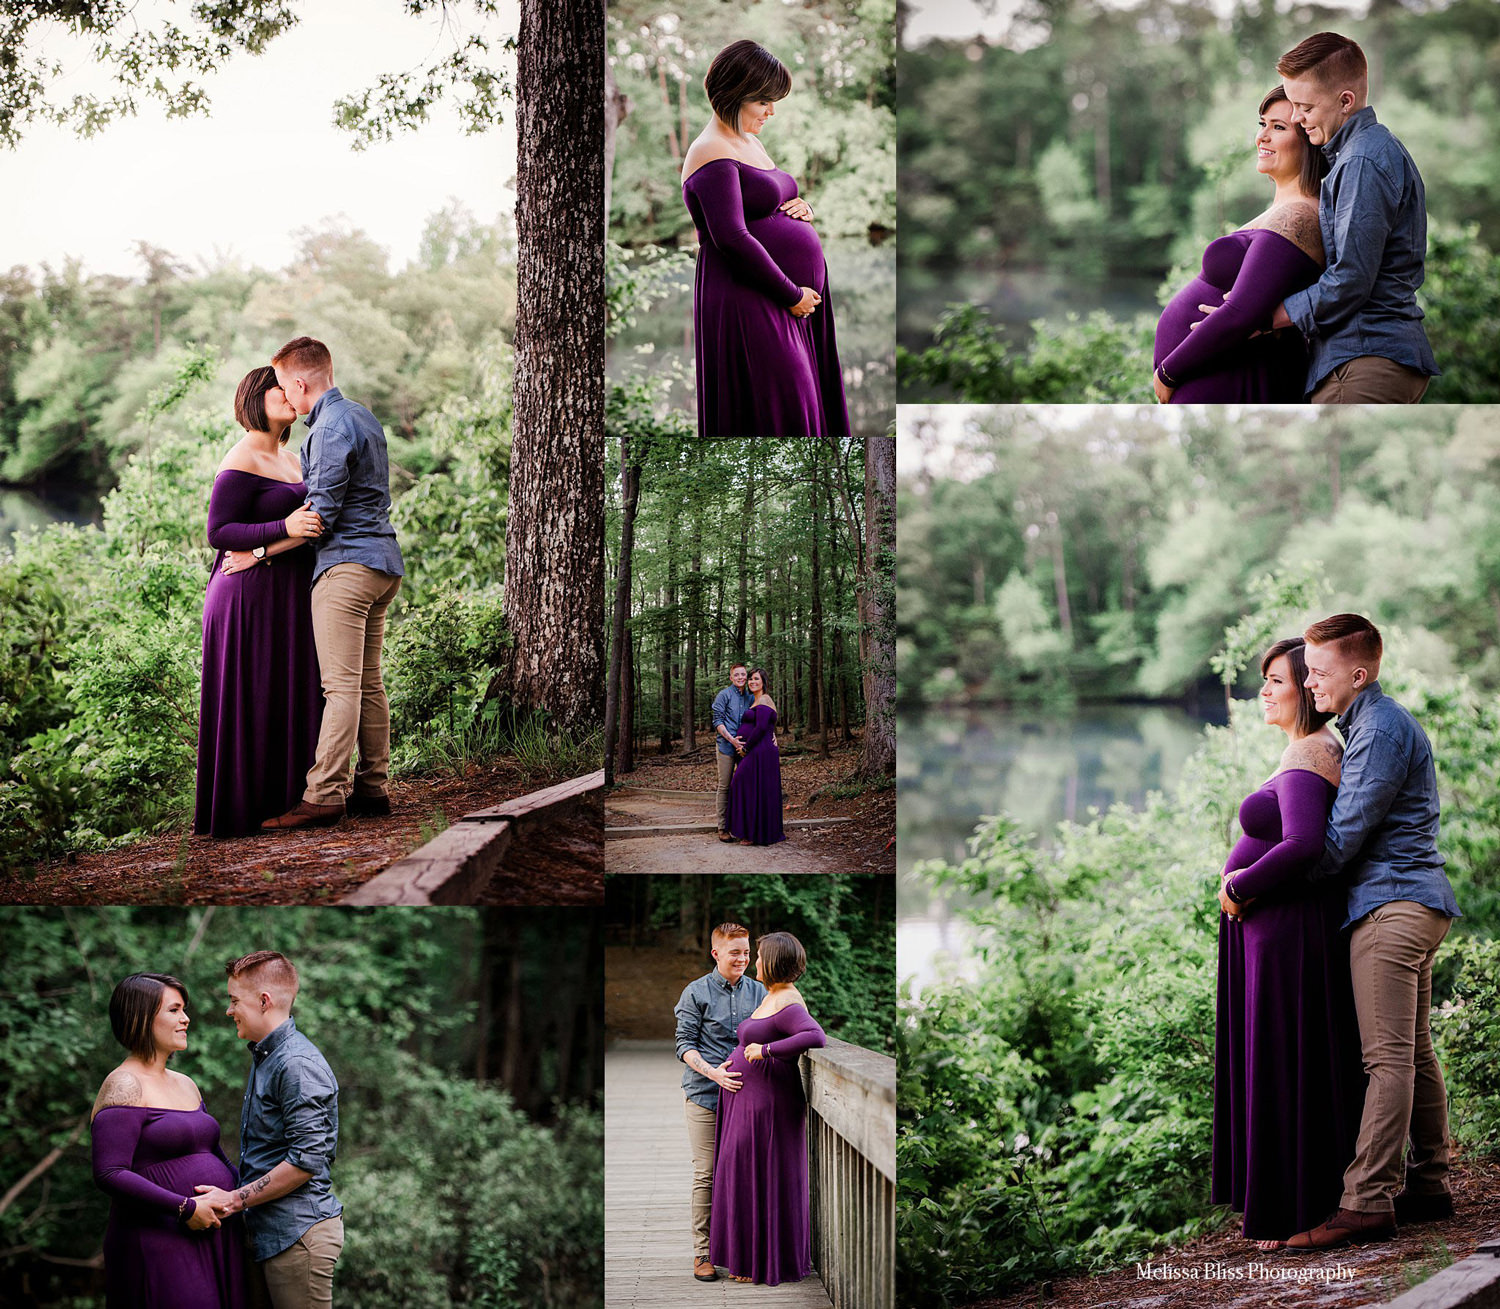 maternity-pictures-mariners-museum-park-norfolk-maternity-photographer-melissa-bliss-photography.jpg